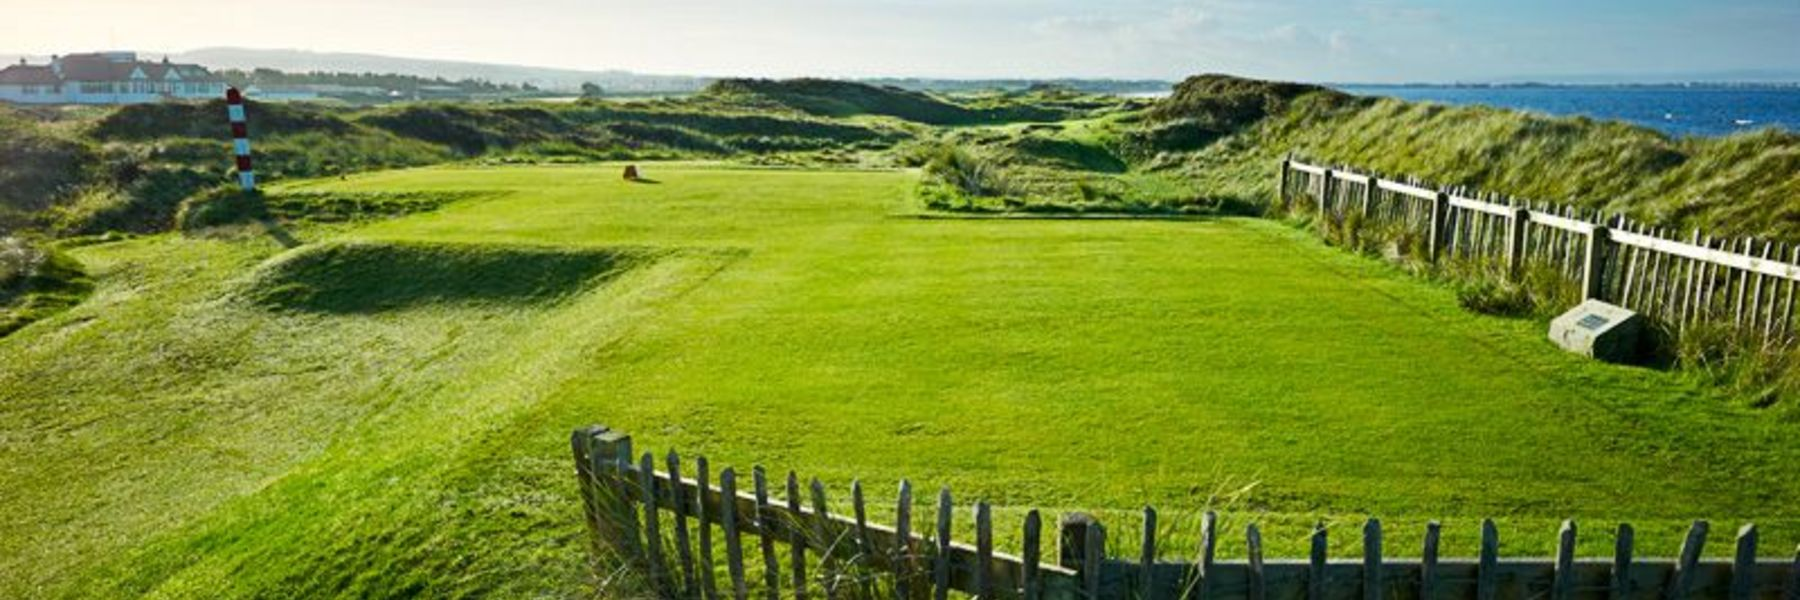 Golf Vacation Package - Western Scotland - Prime time. Prime Courses. Prime hotels. 6 Nights/5 Rounds + car for $2129!